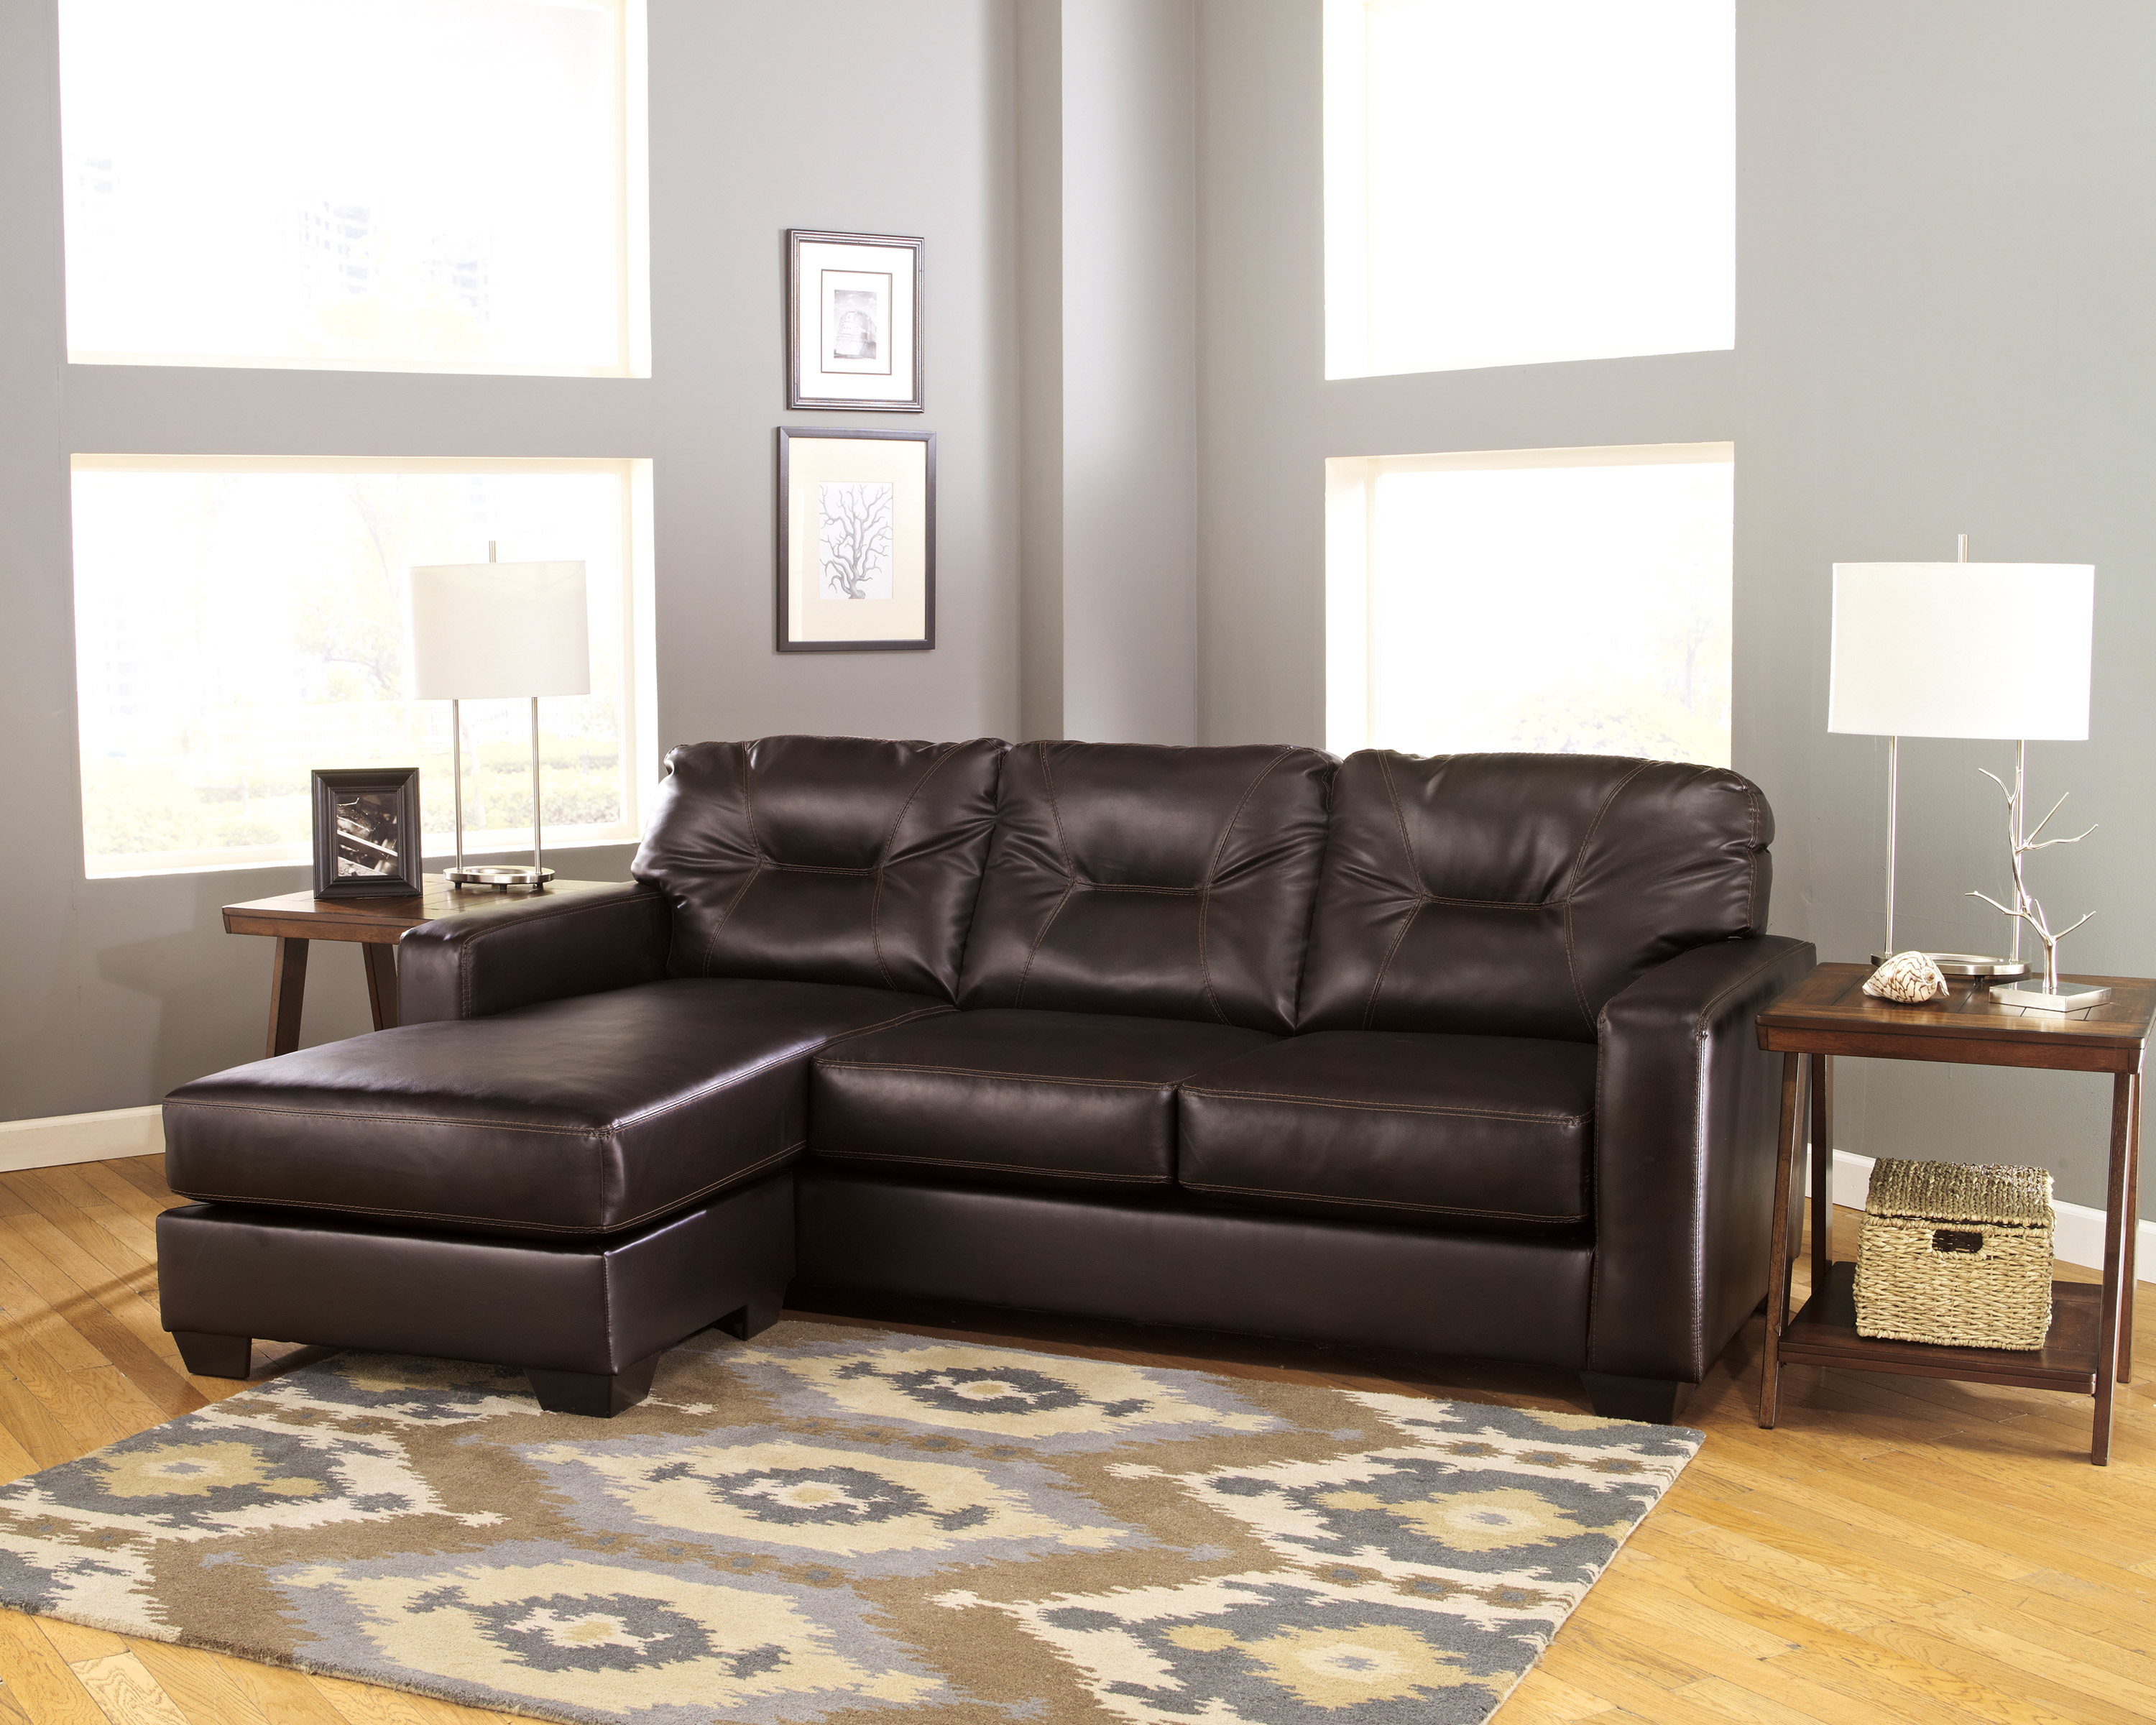 Signature Design Alluvia Sofa Chaise Harrington Home Furniture